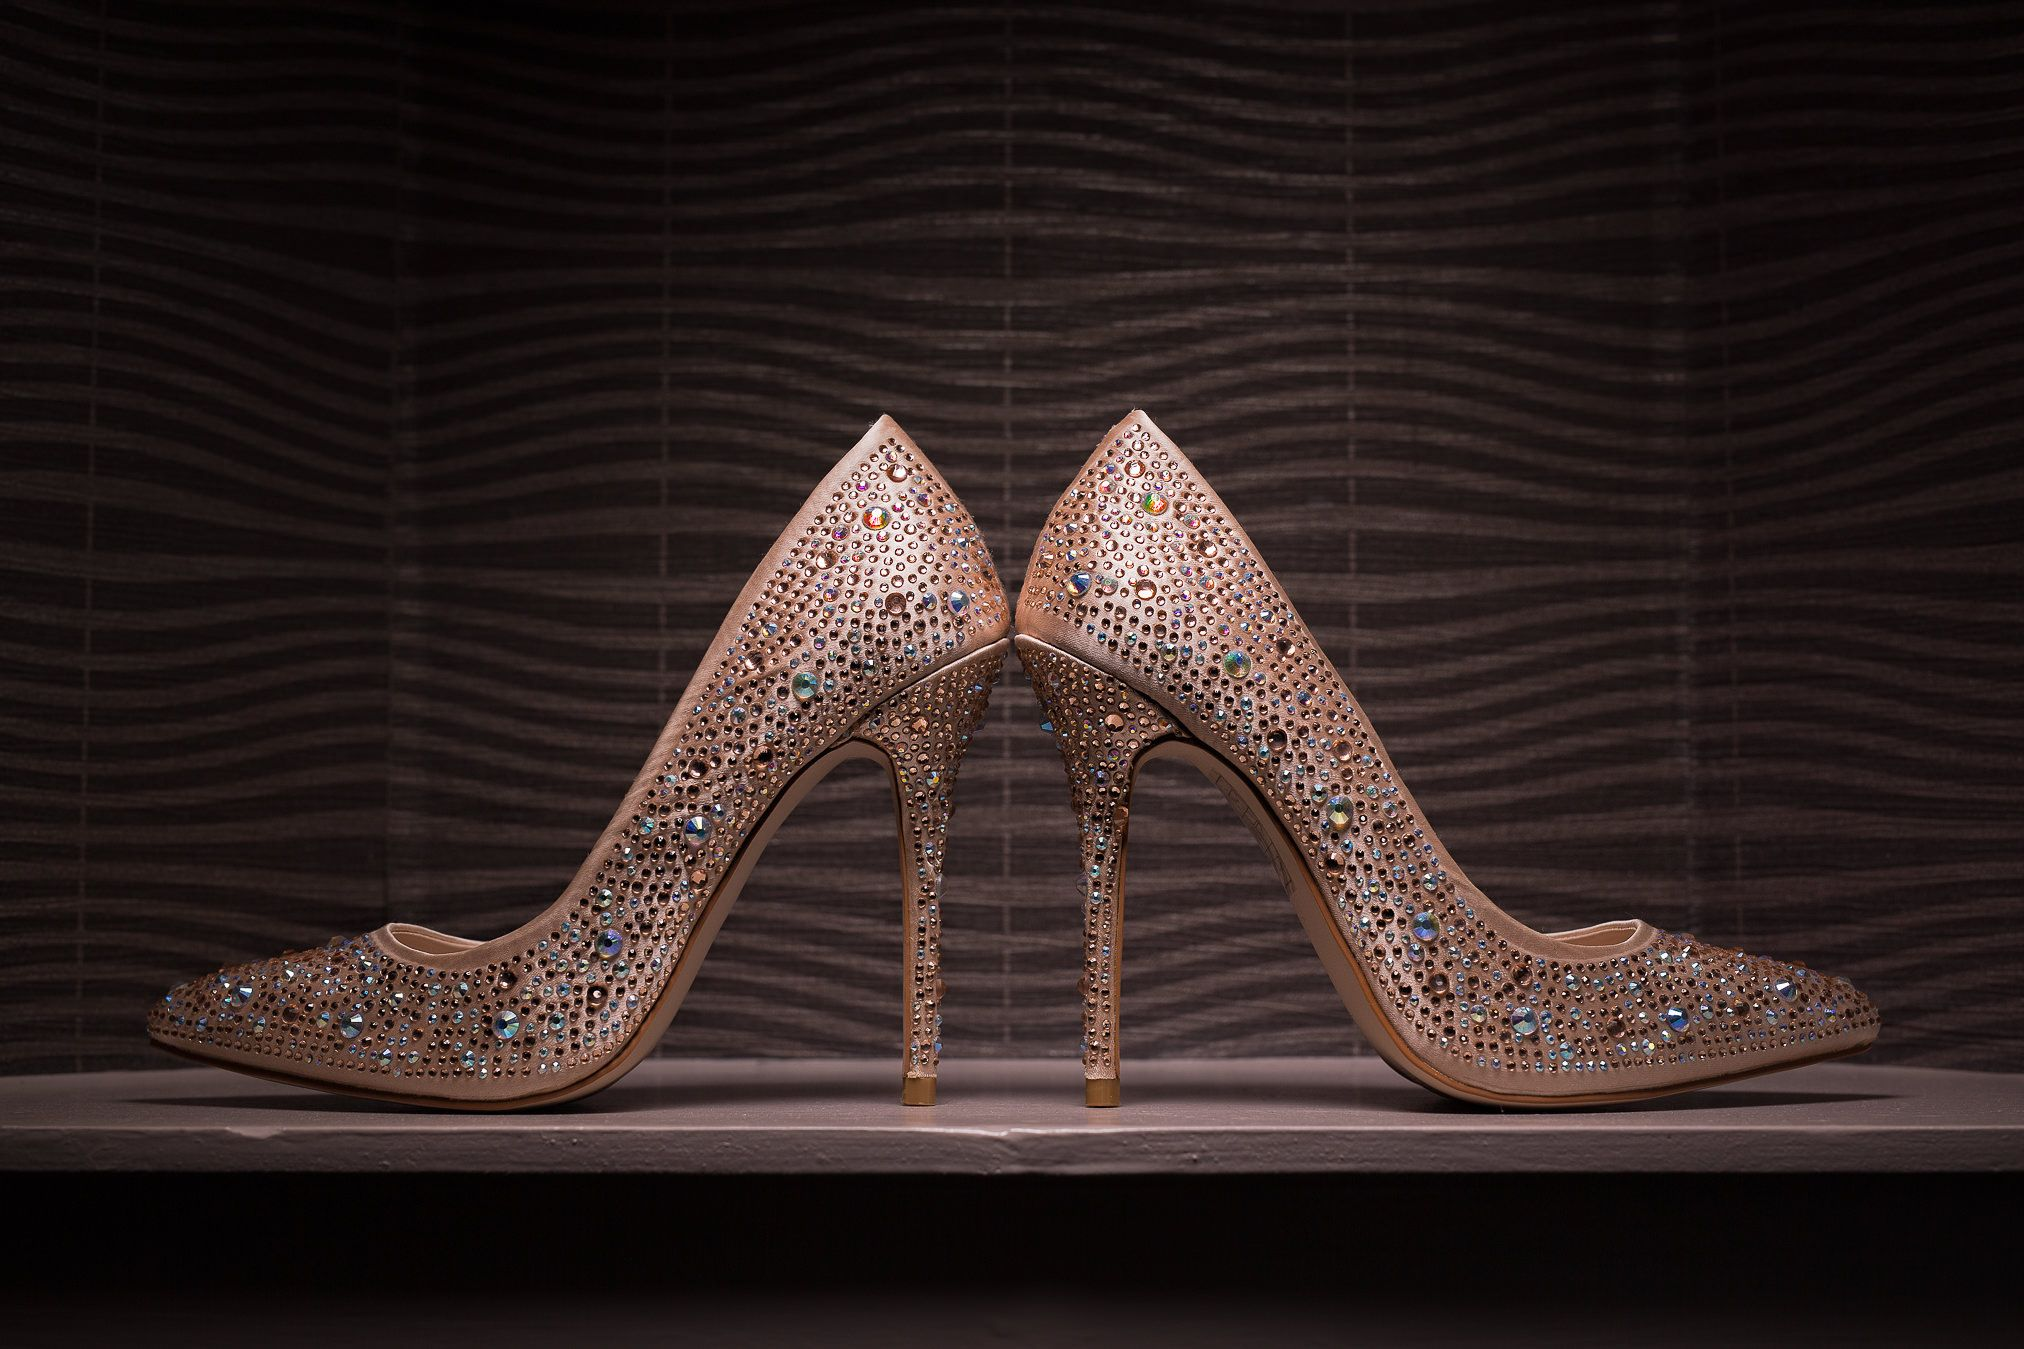 Jewel encrusted ornate gold wedding shoes